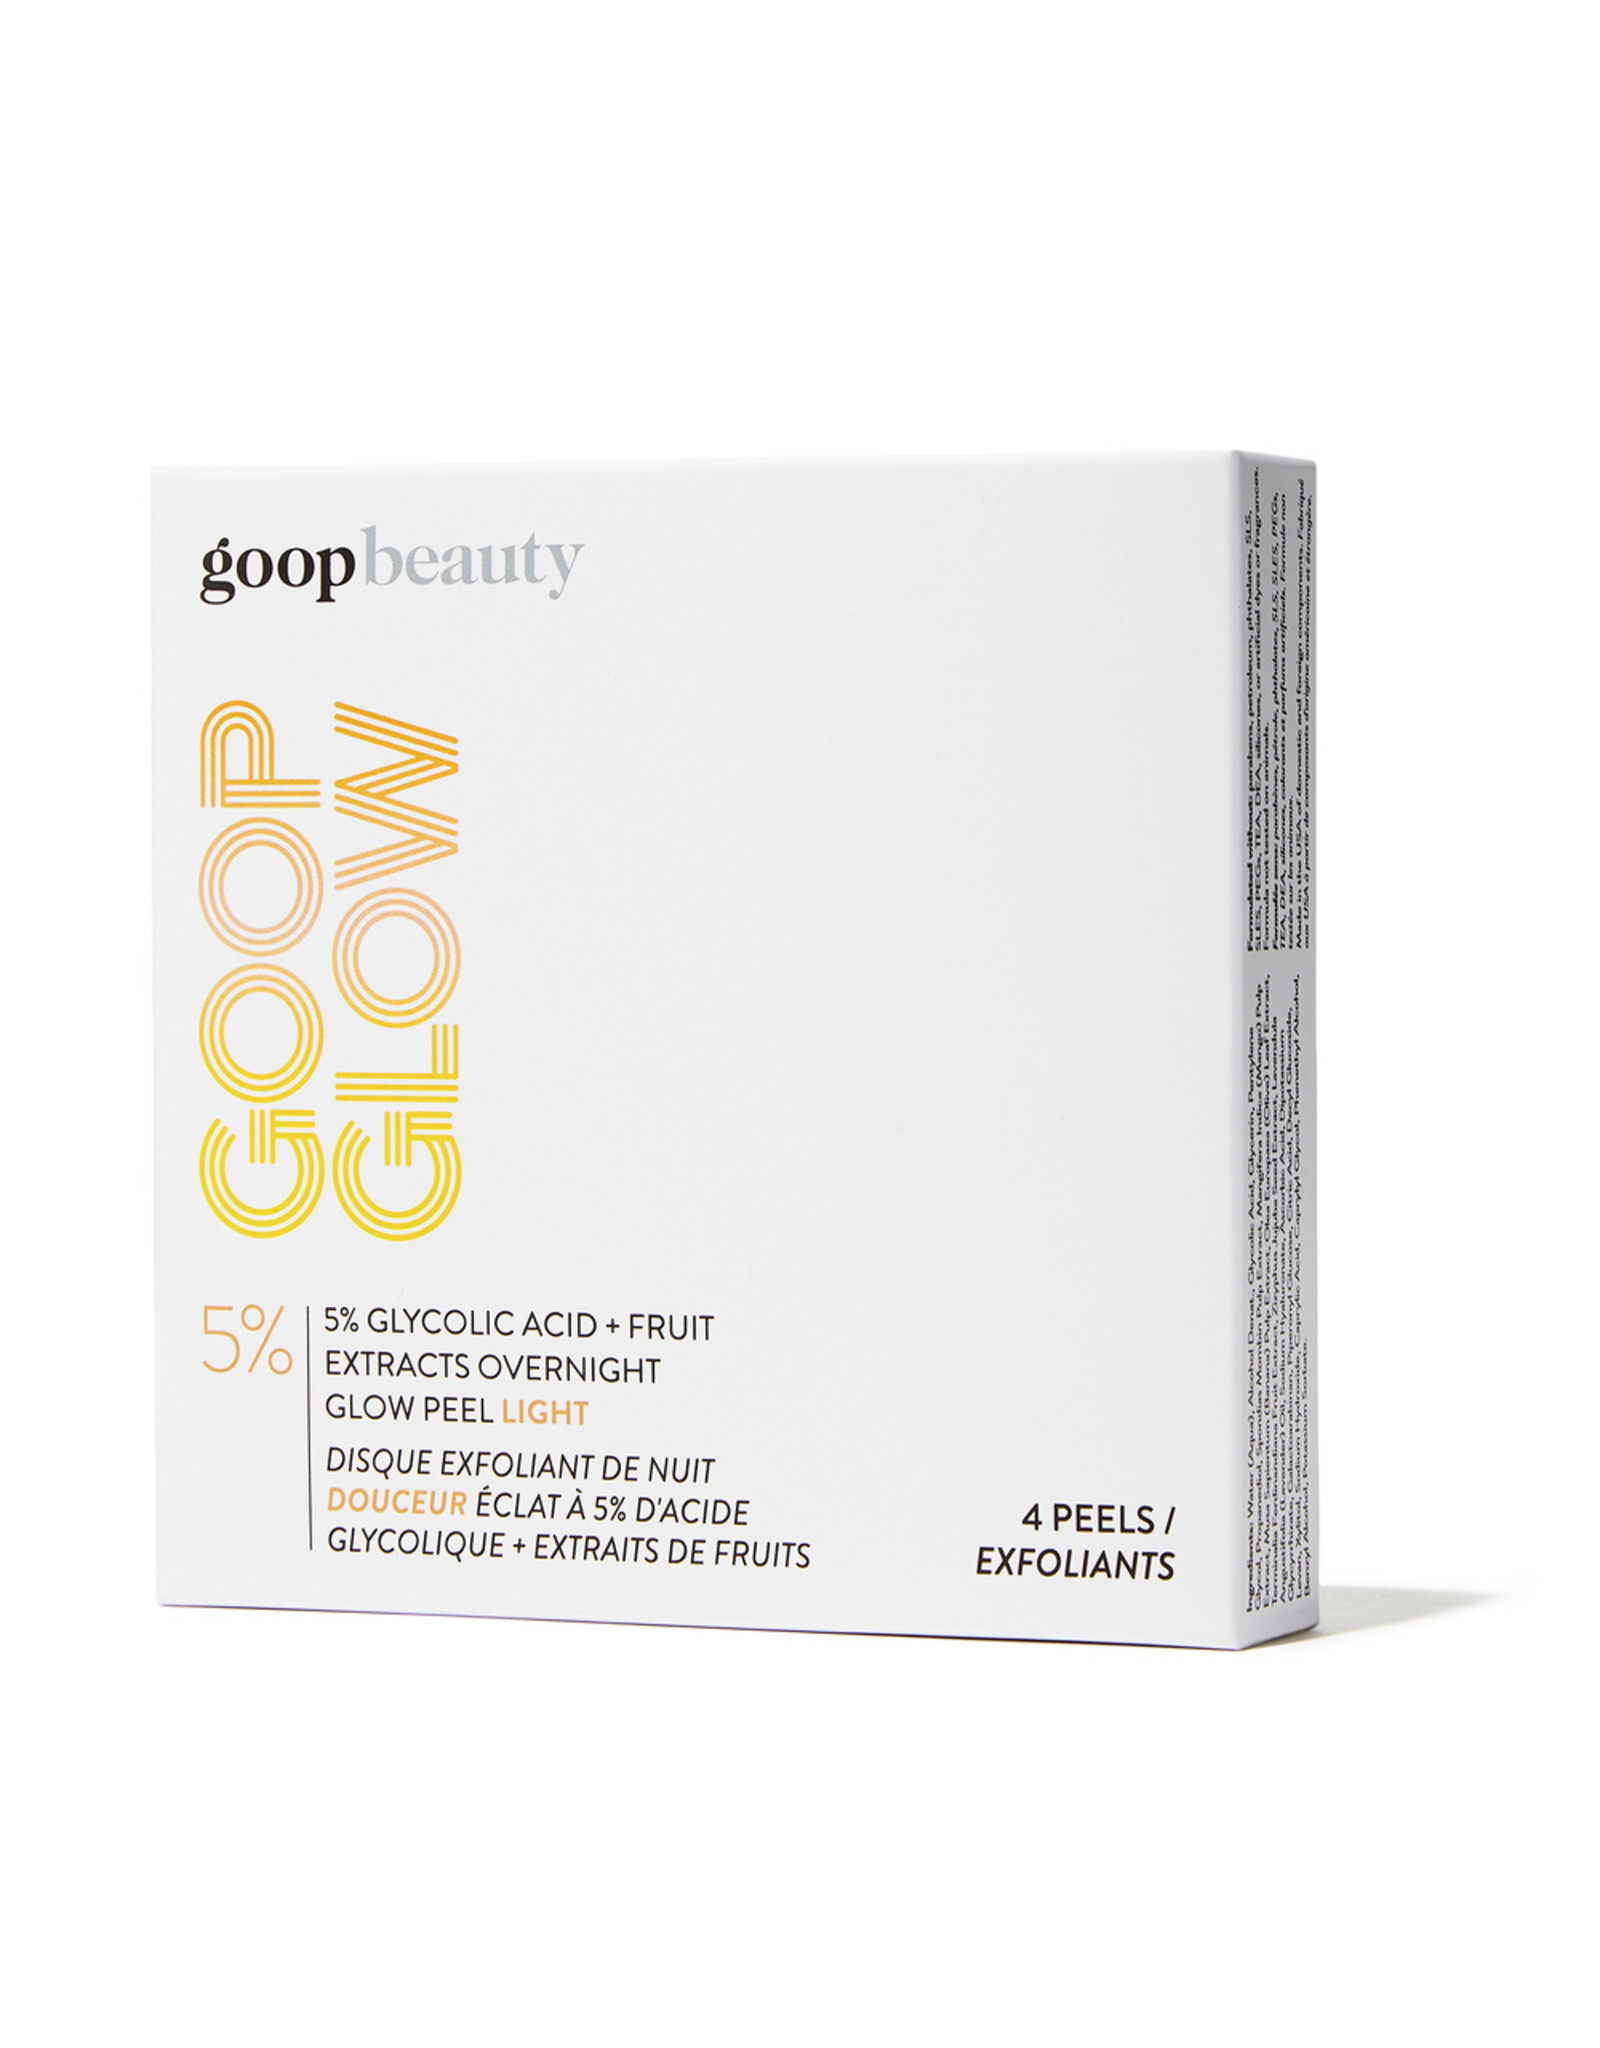 goop Beauty goop Beauty GOOPGLOW 5% Glycolic Acid Overnight Glow Peel Light 4-Pack